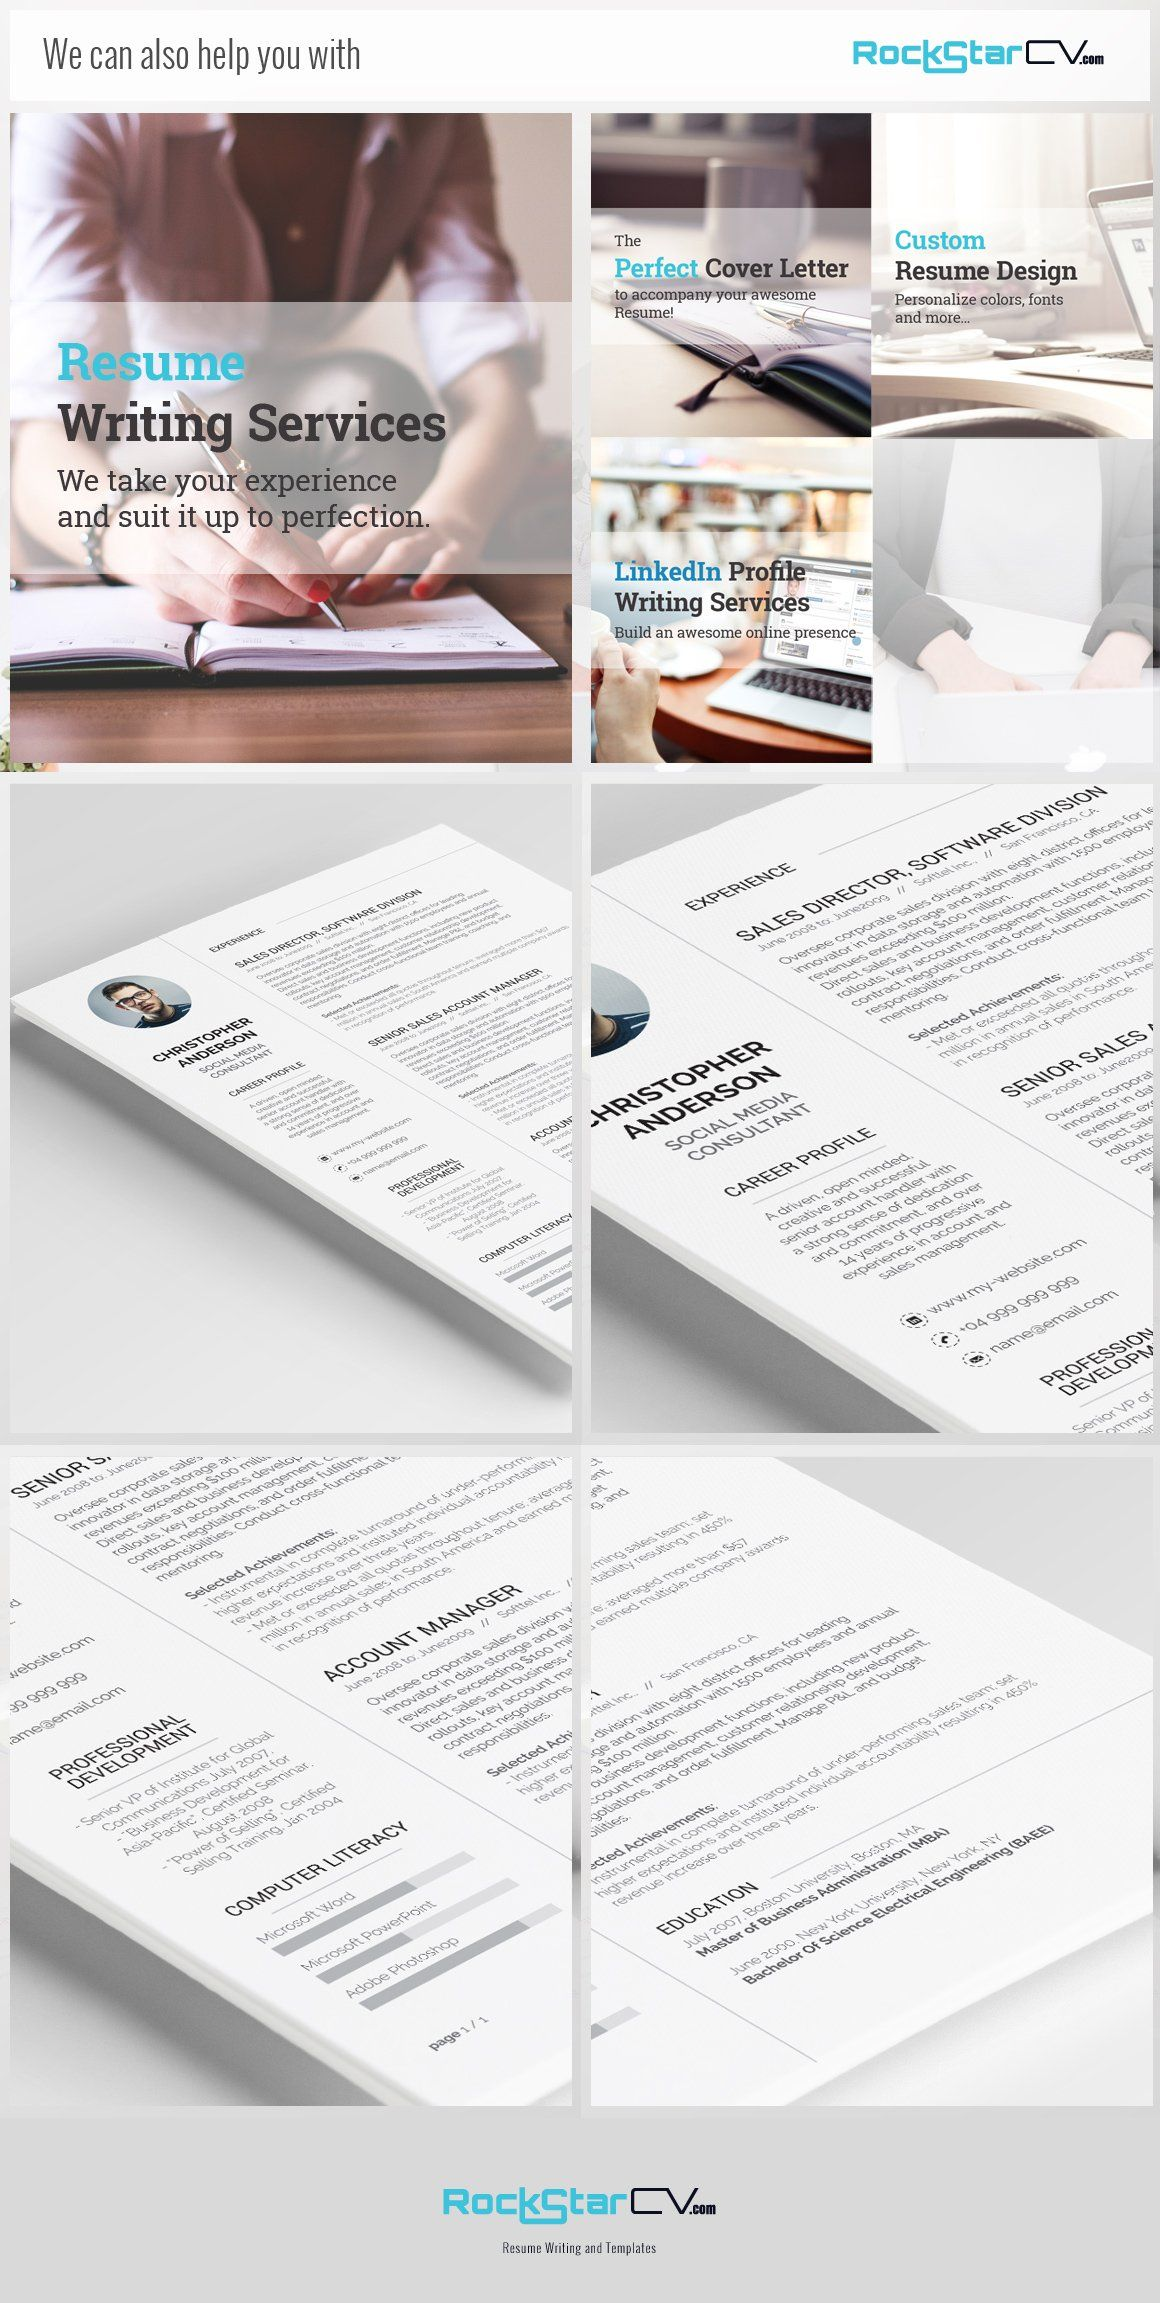 How effective are resume writing services